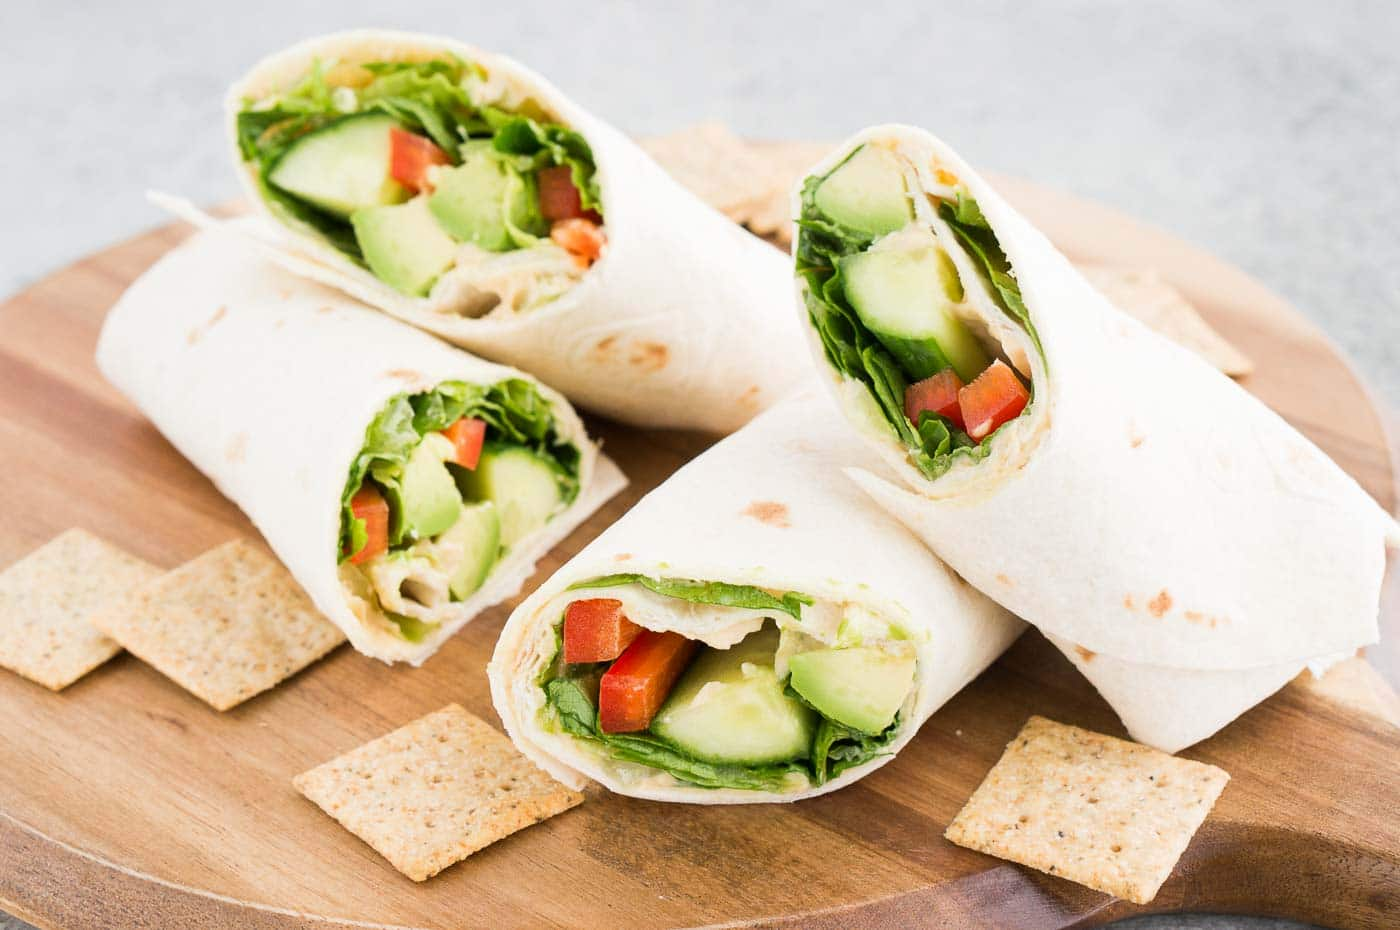 vegetarian wrap and crackers on a board